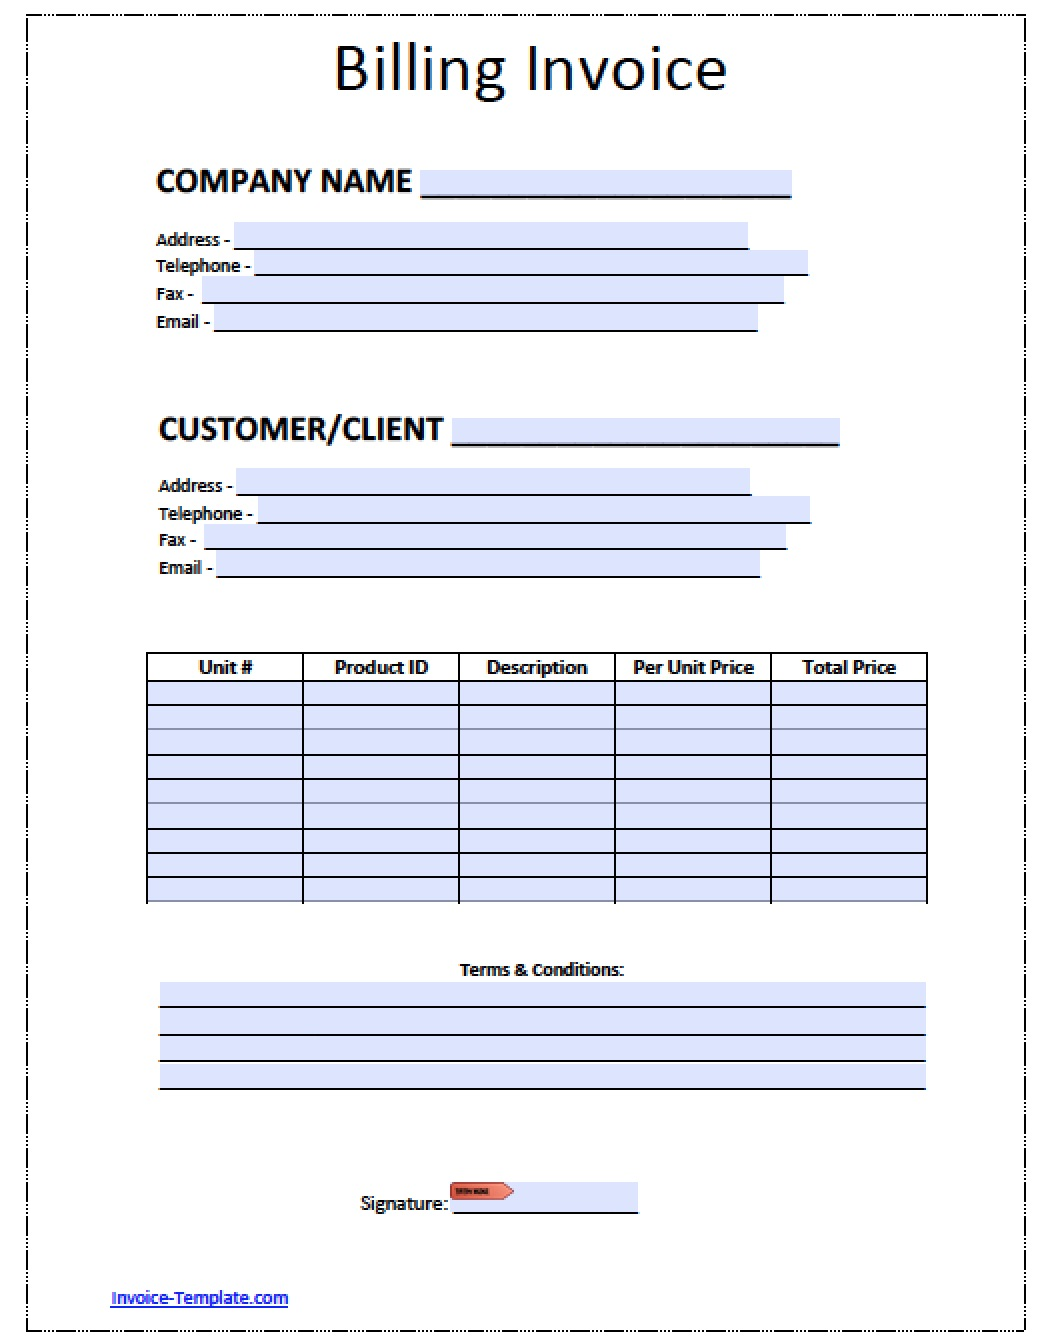 Billing Invoice Template Word Pdf  Invoice Templates In Word